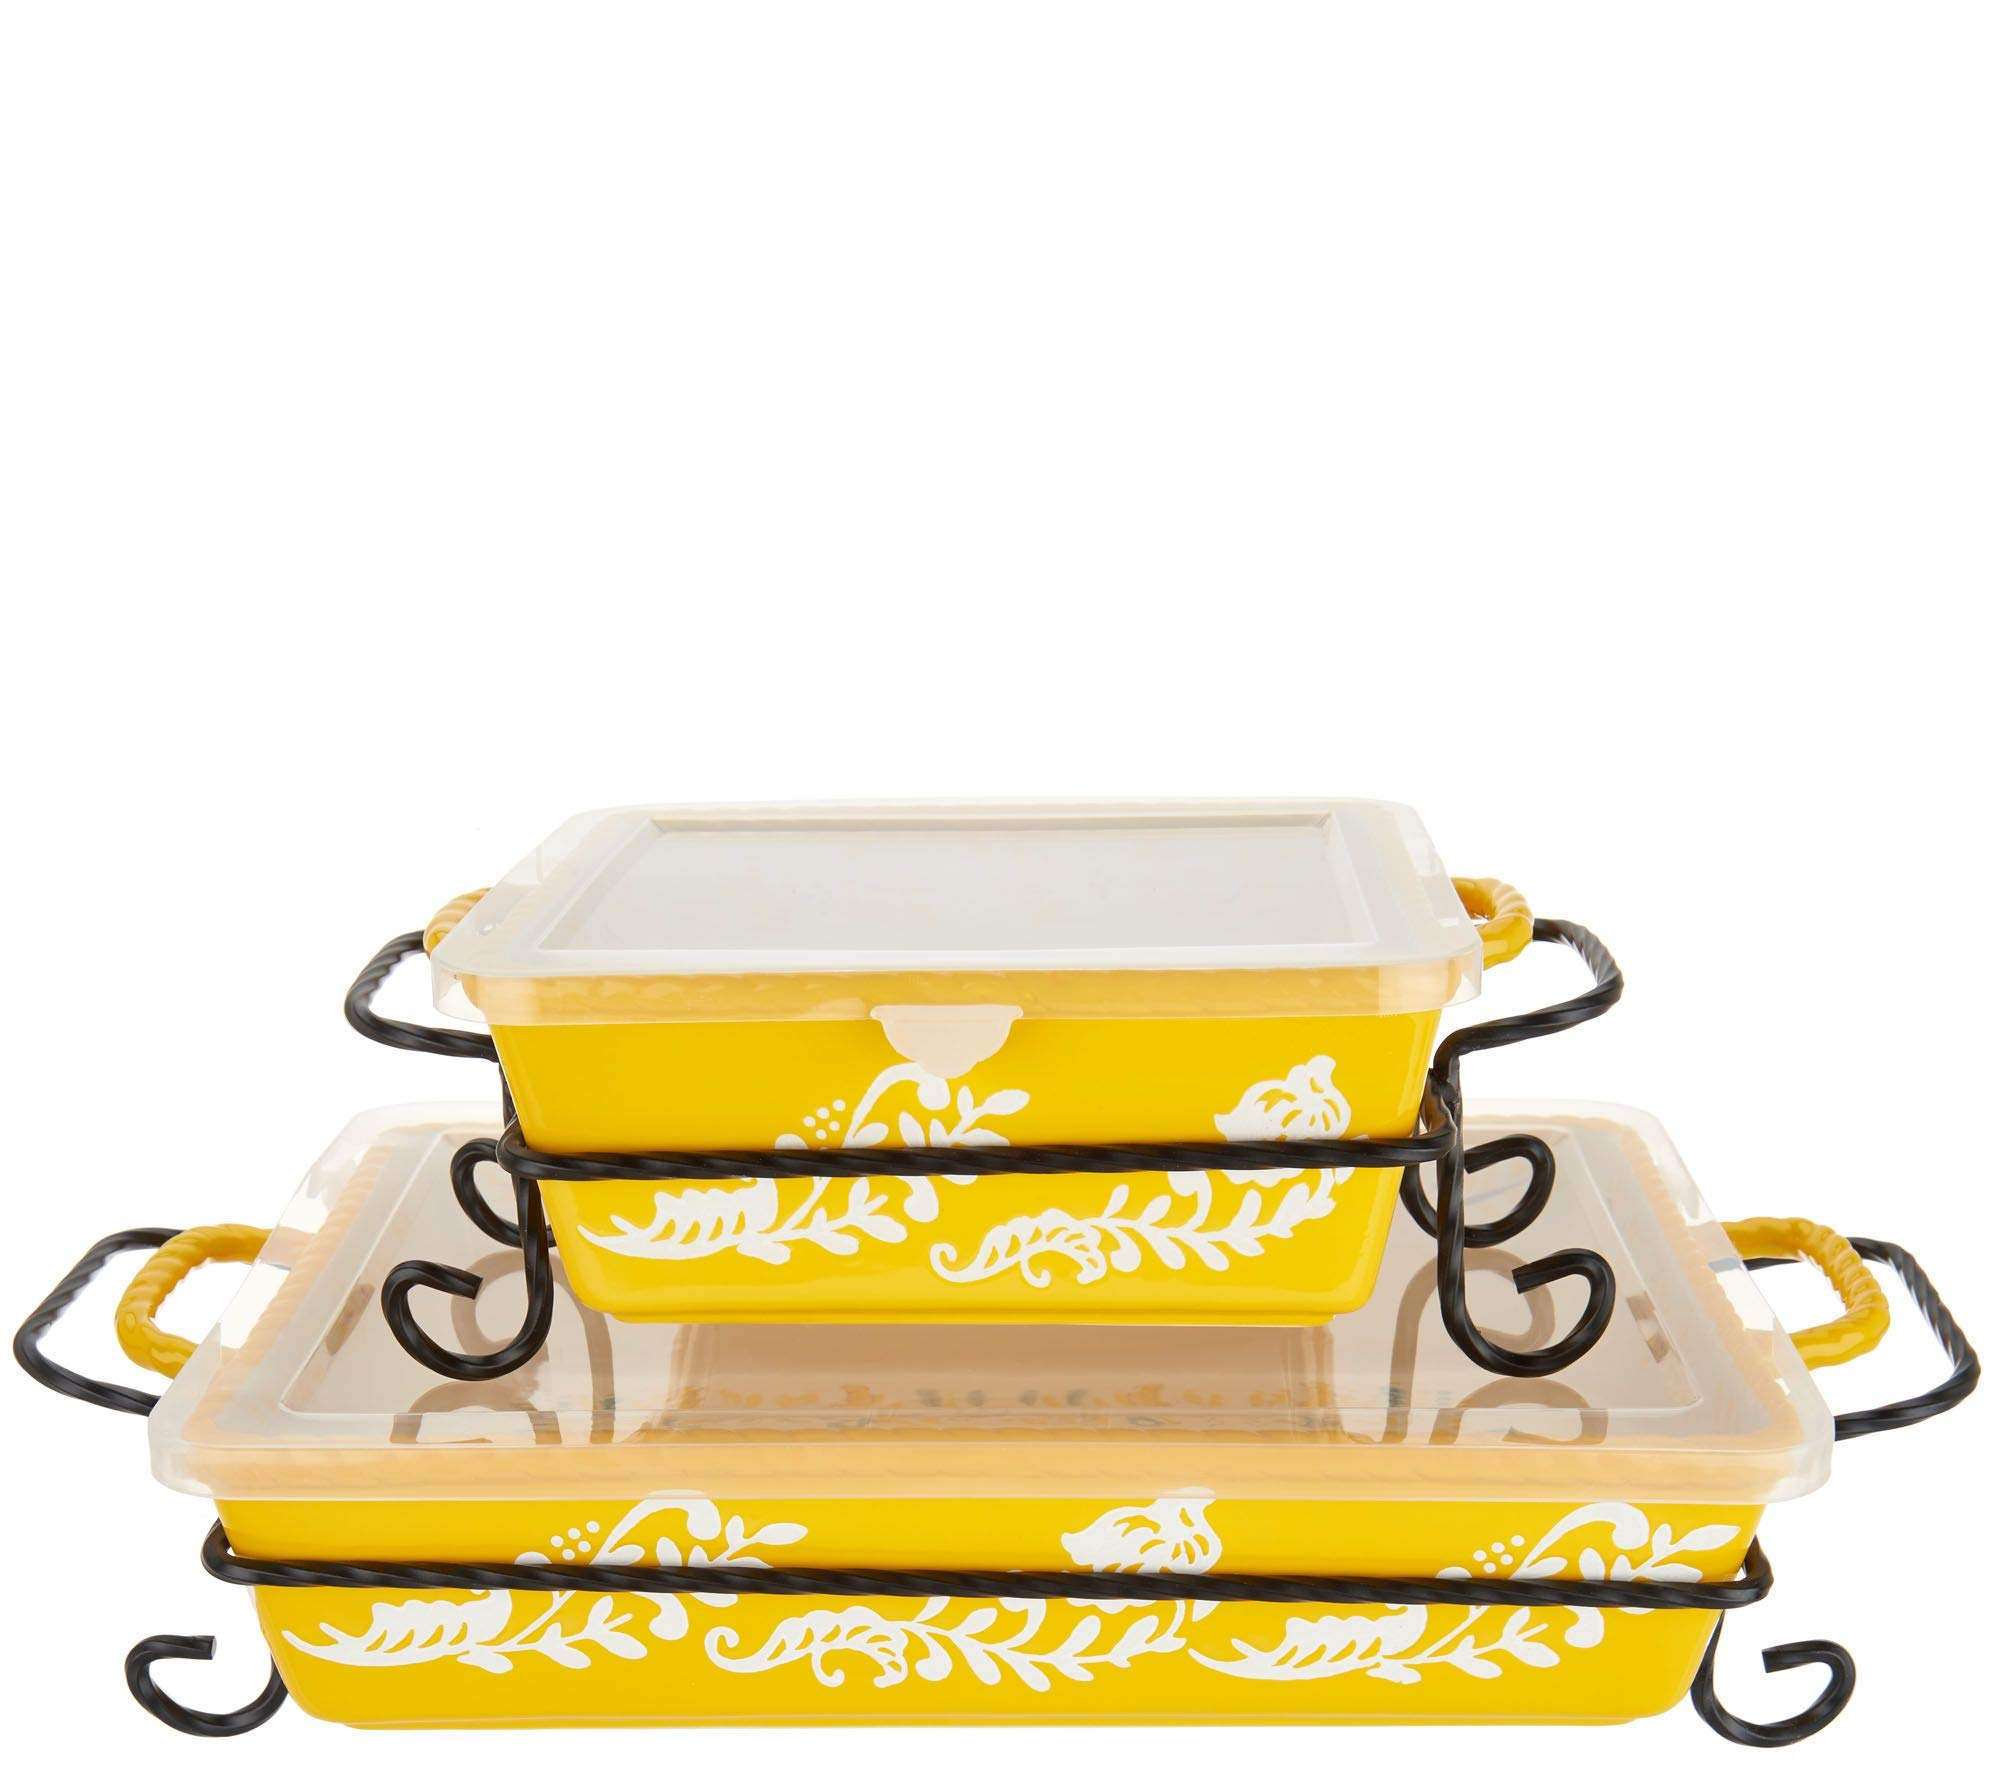 Valerie Bertinelli 4-Piece Bake & Serve Set w/Lids Model K46773 by Valerie Bertinelli